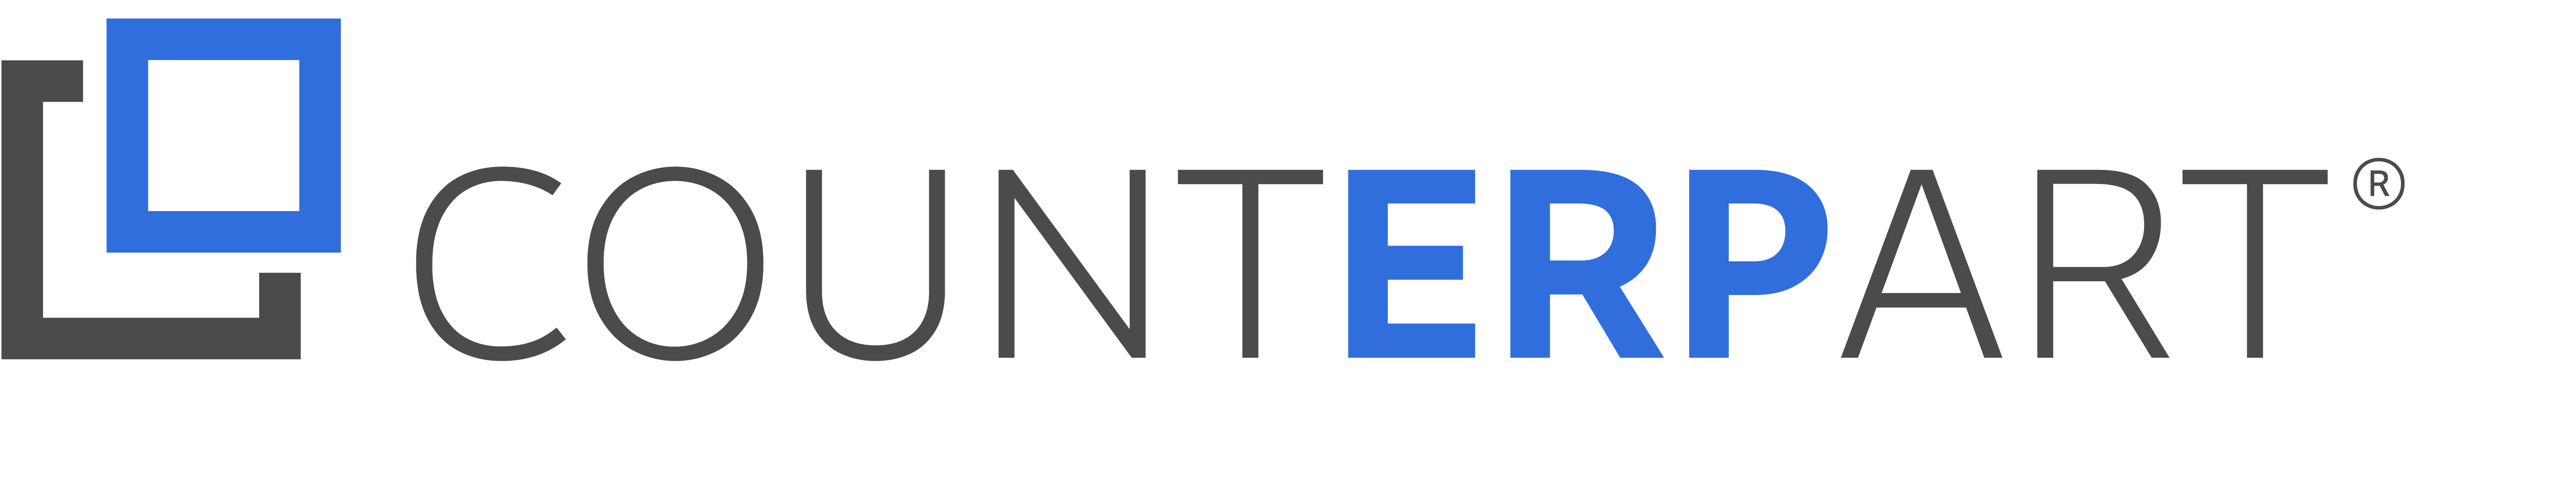 Andrew Schutte of COUNTERPART ETO ERP Talks Engineering Efficiency on Industrial Talk Podcast